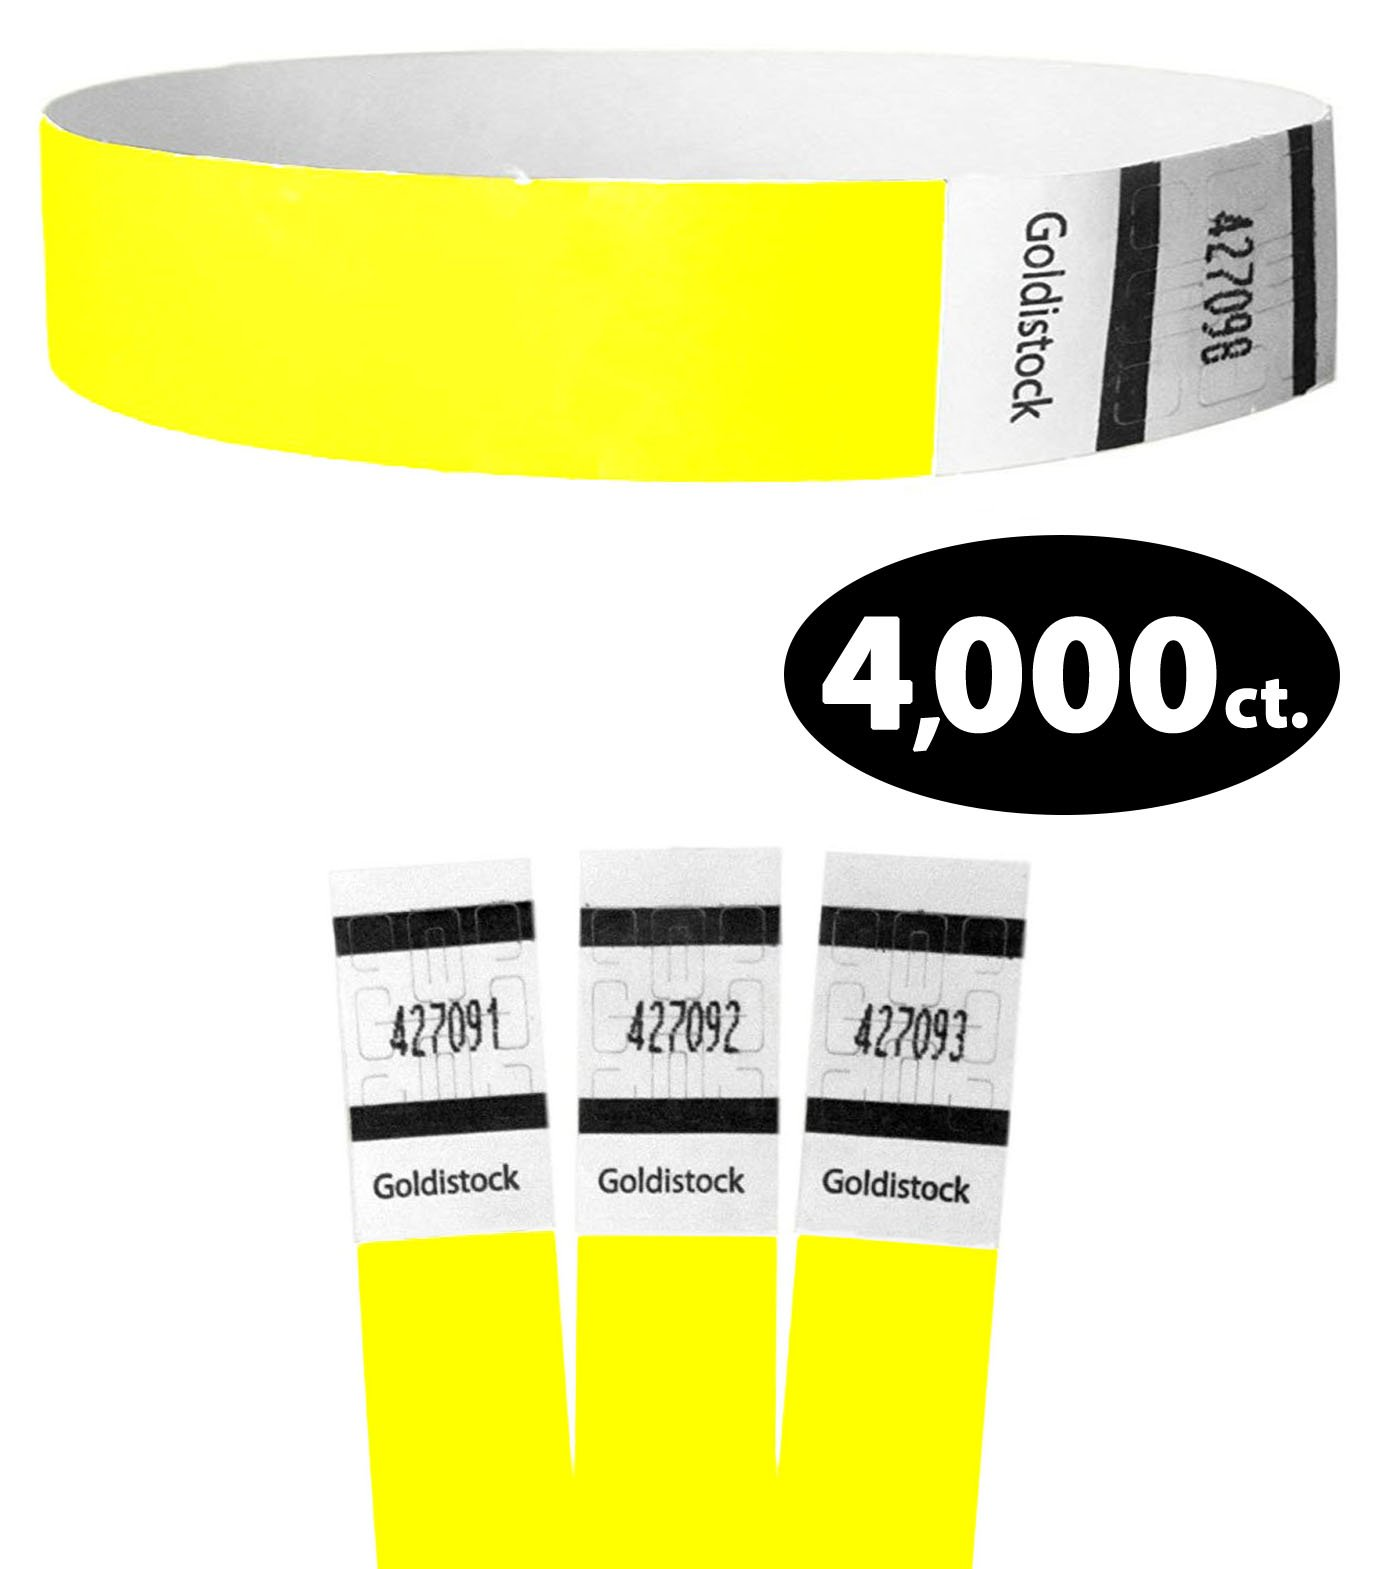 Goldistock Original Series - 3/4'' Tyvek Wristbands Horizon Neon Yellow 4,000 Count Value Pack - Event Identification Bands (Paper - Like Texture)